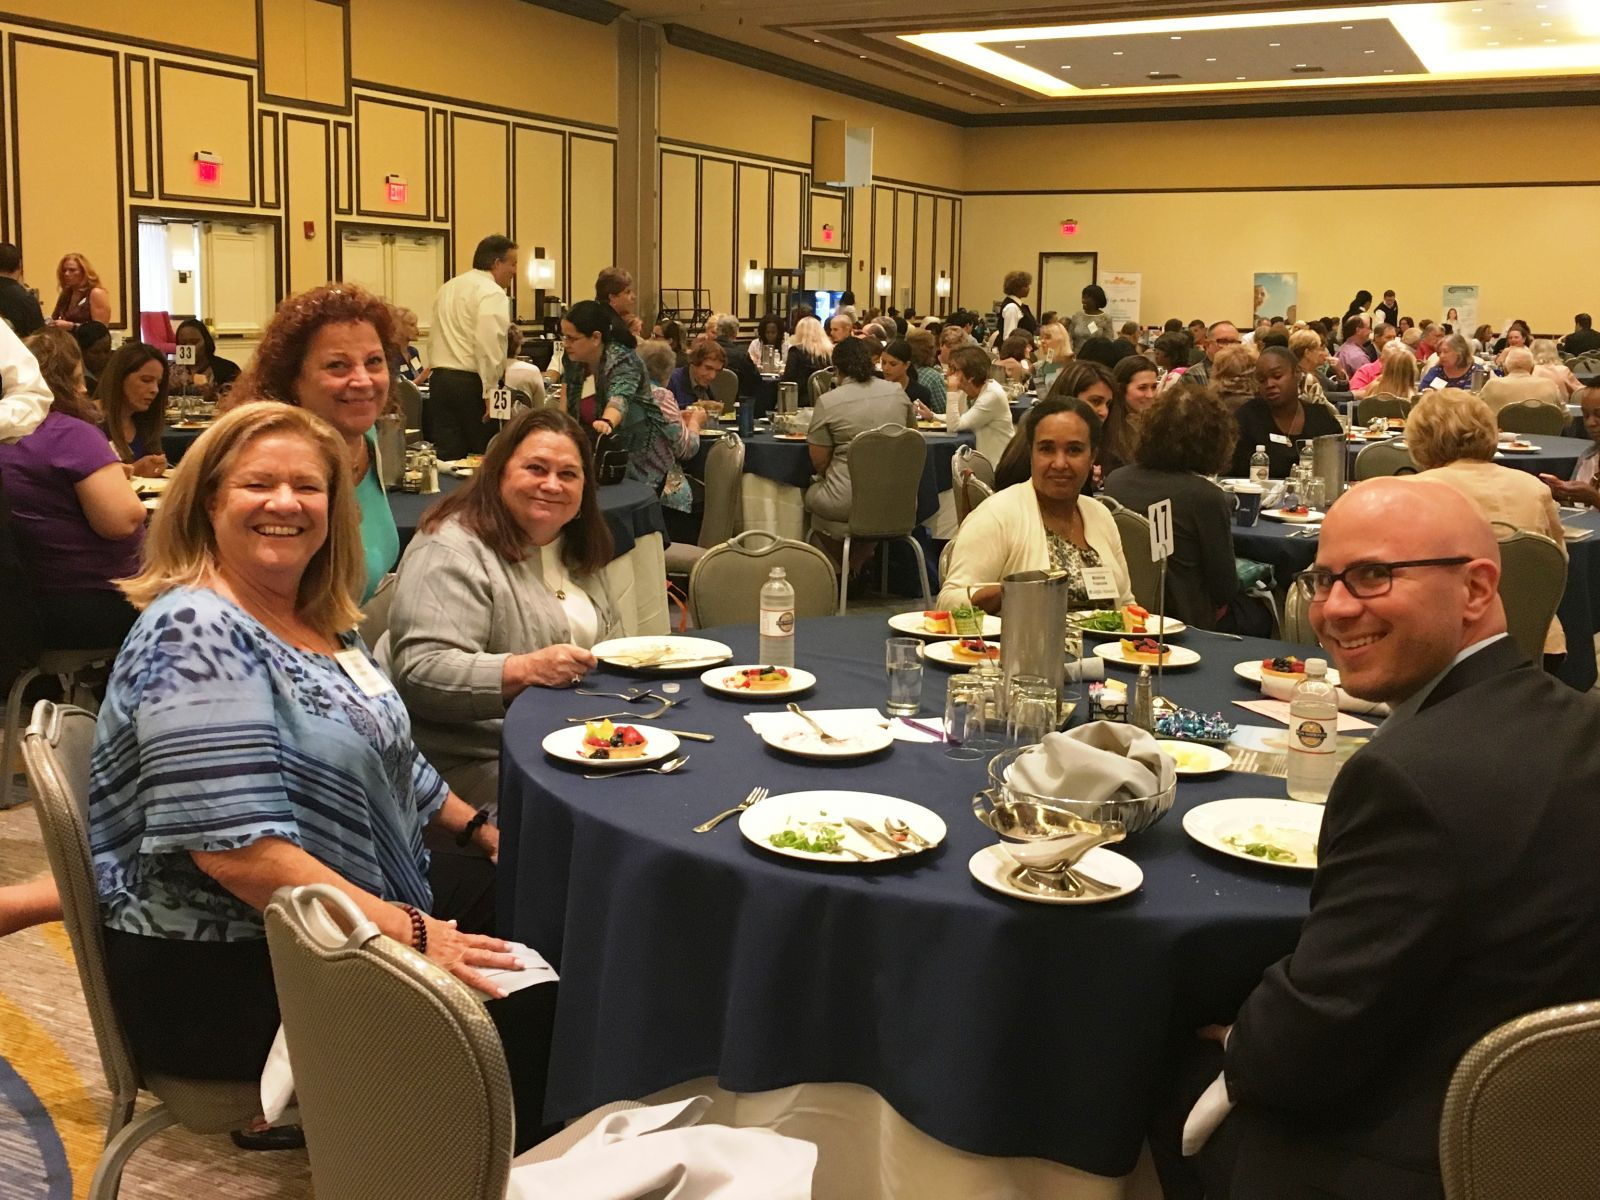 Attorney Jonathan Karp (right) mingles with attendees at the luncheon